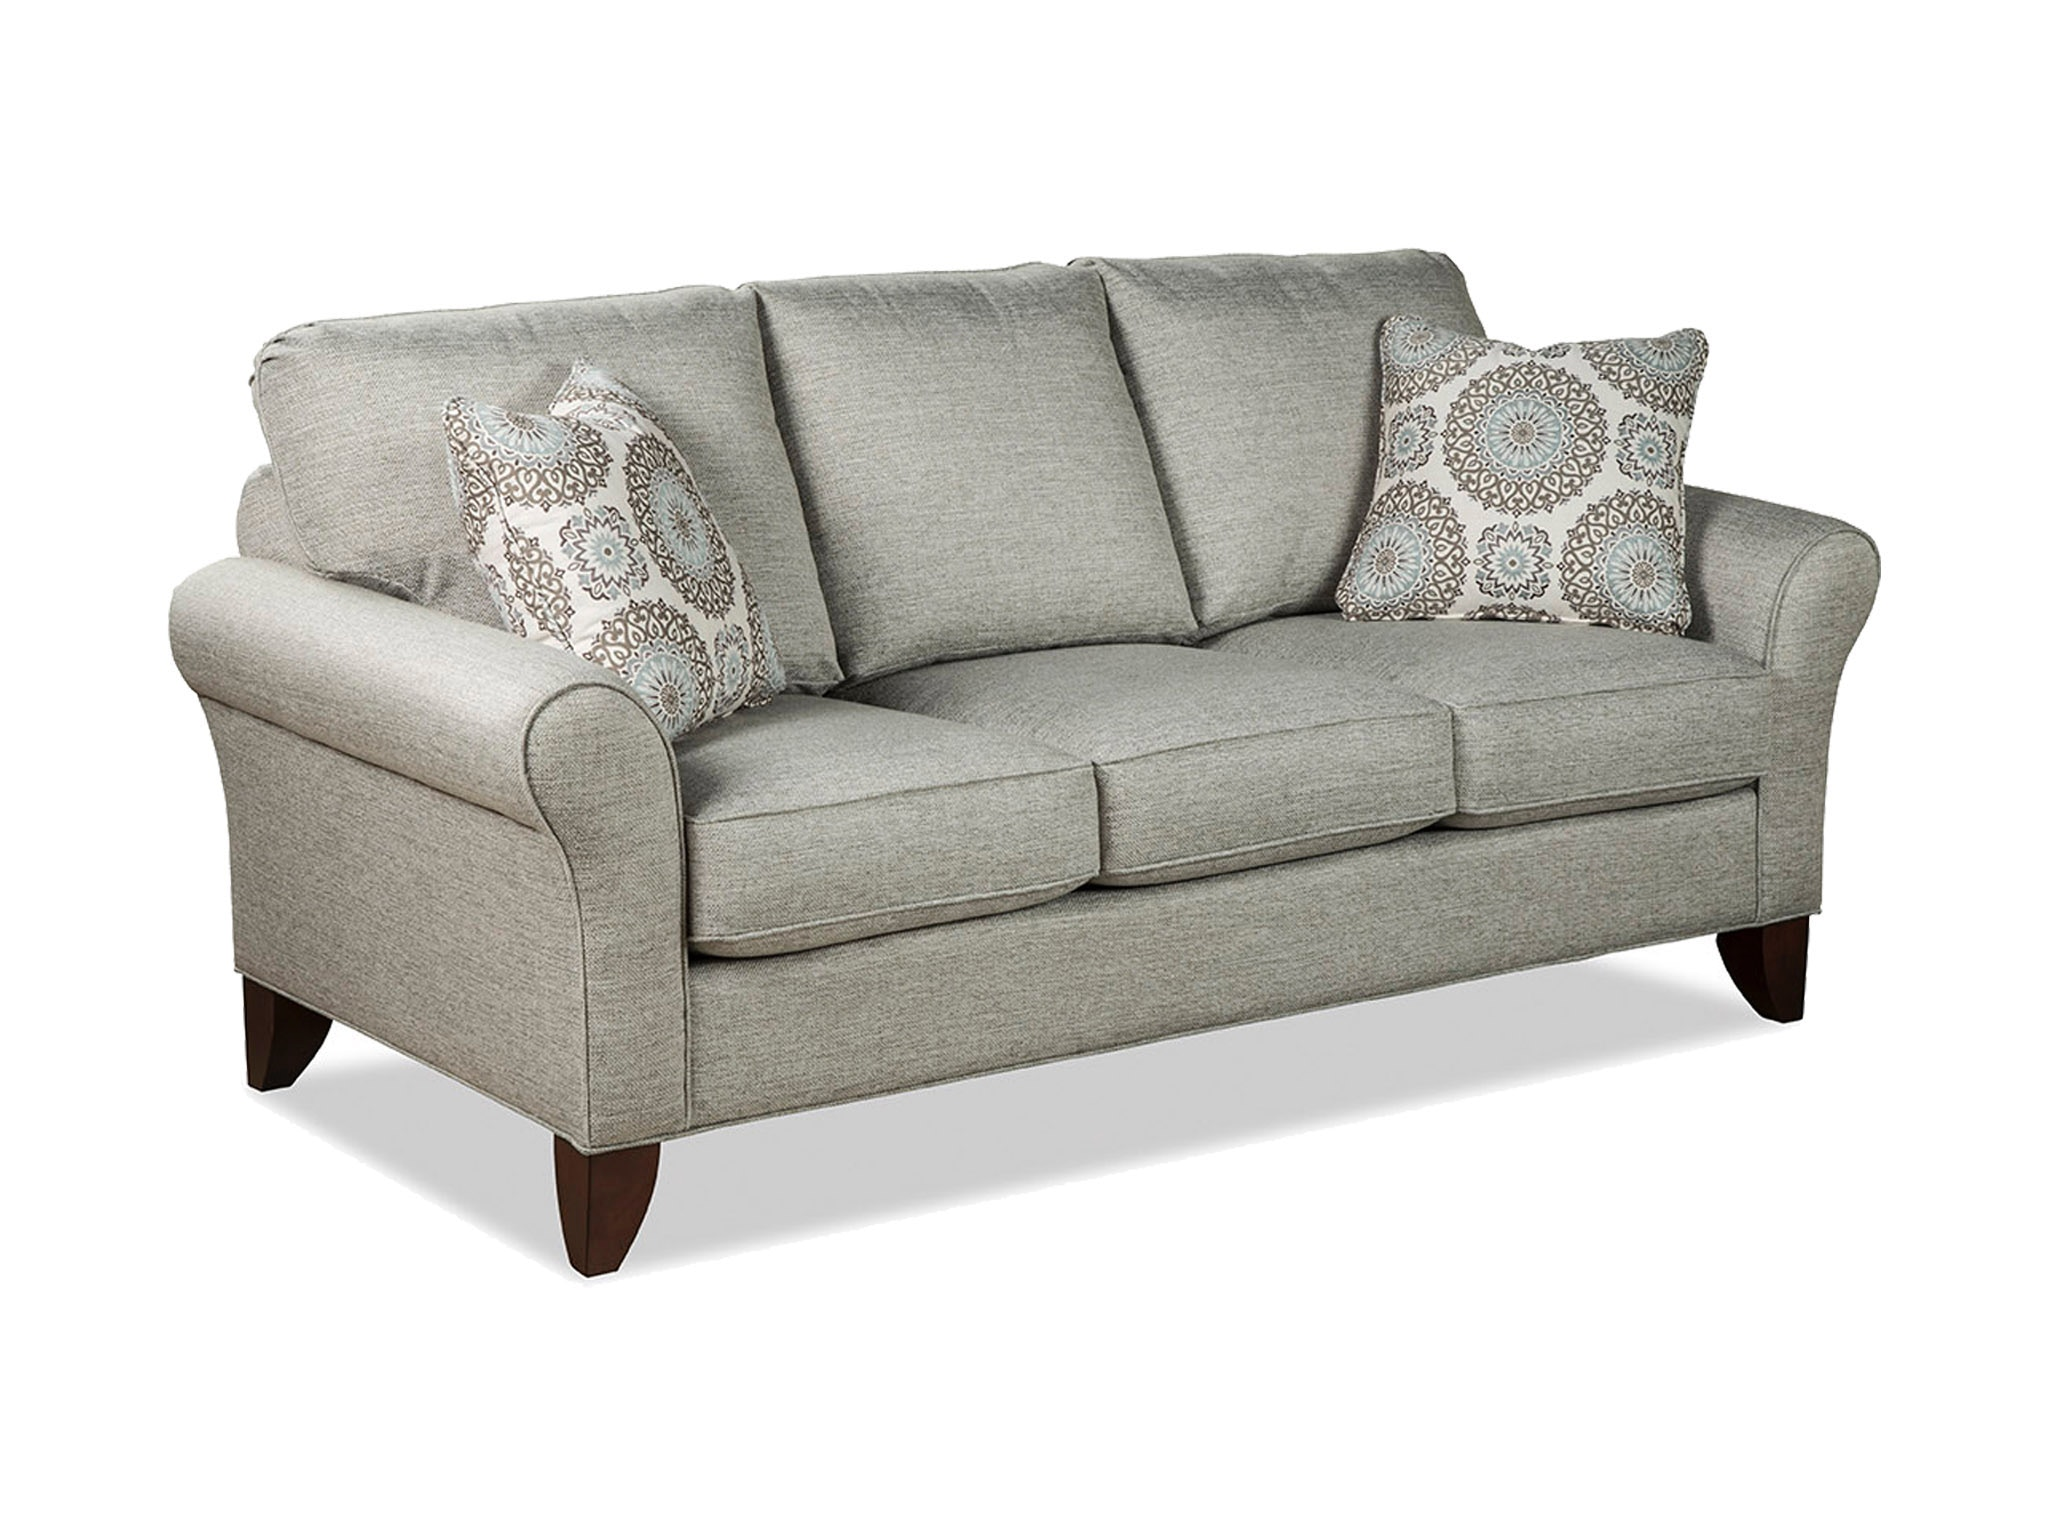 Attirant Cozy Life Living Room Sofa